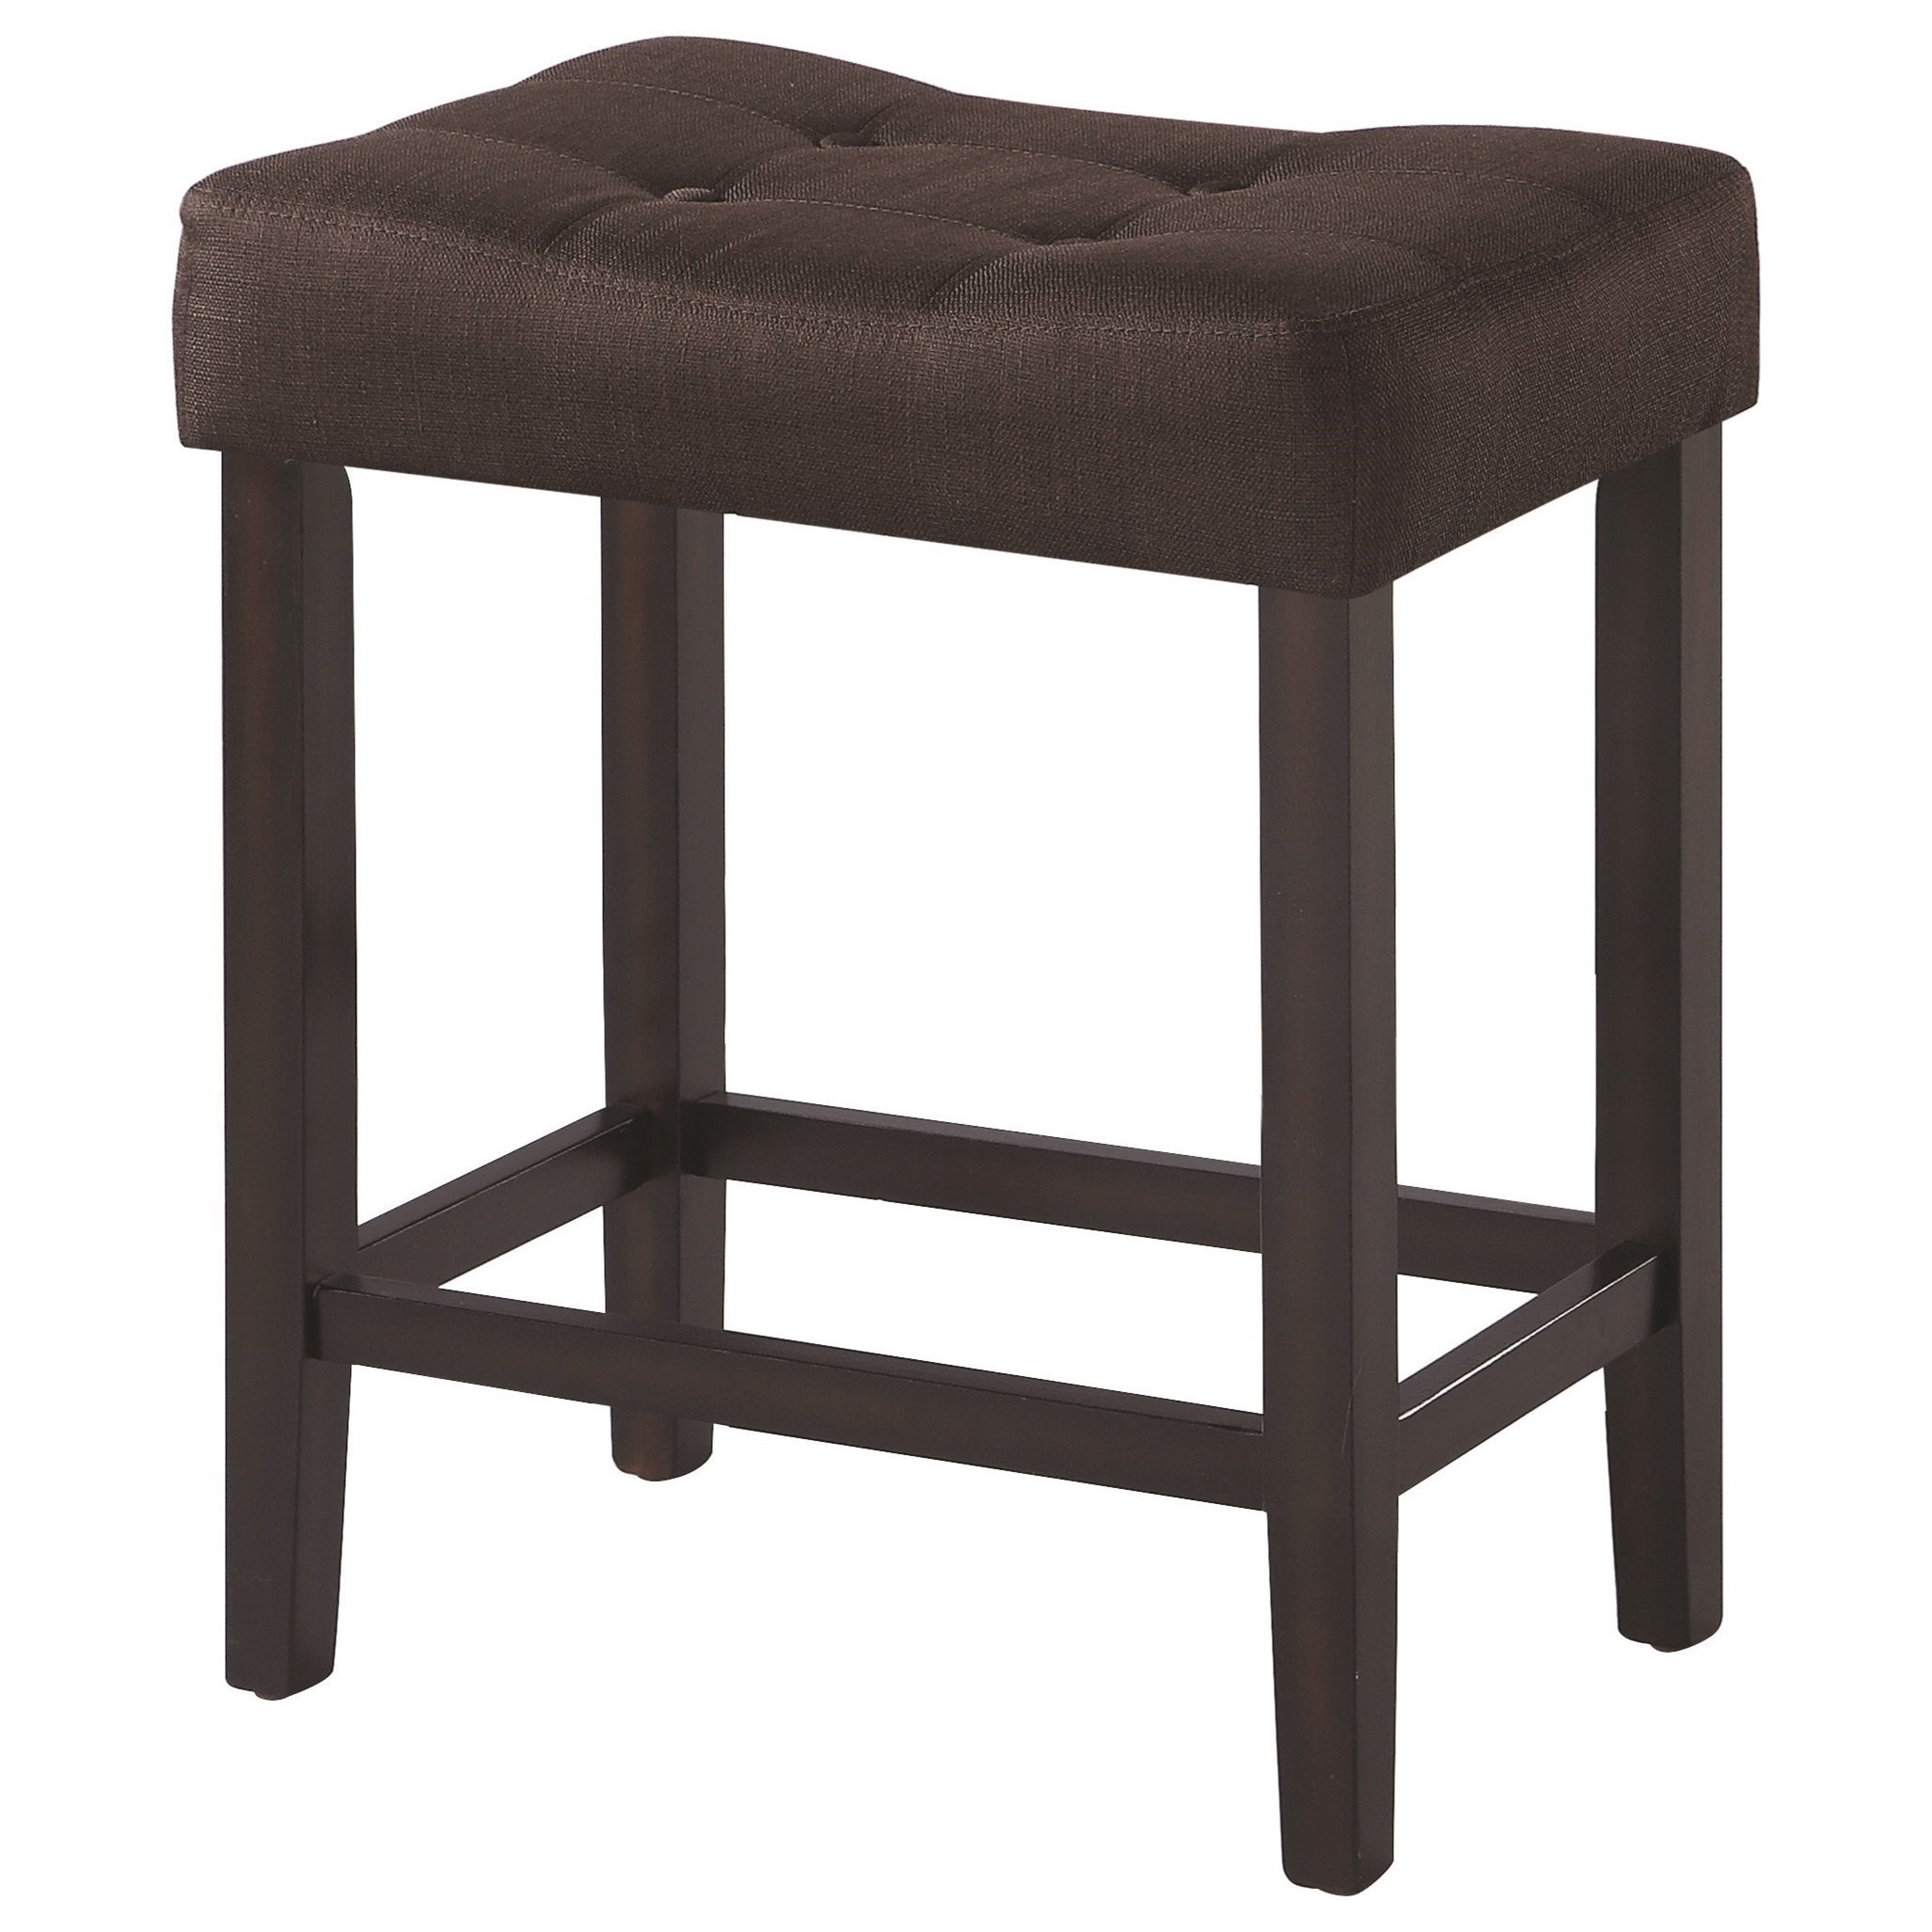 upholstered counter chairs foam padding for dining room coaster and bar stools backless height stool by